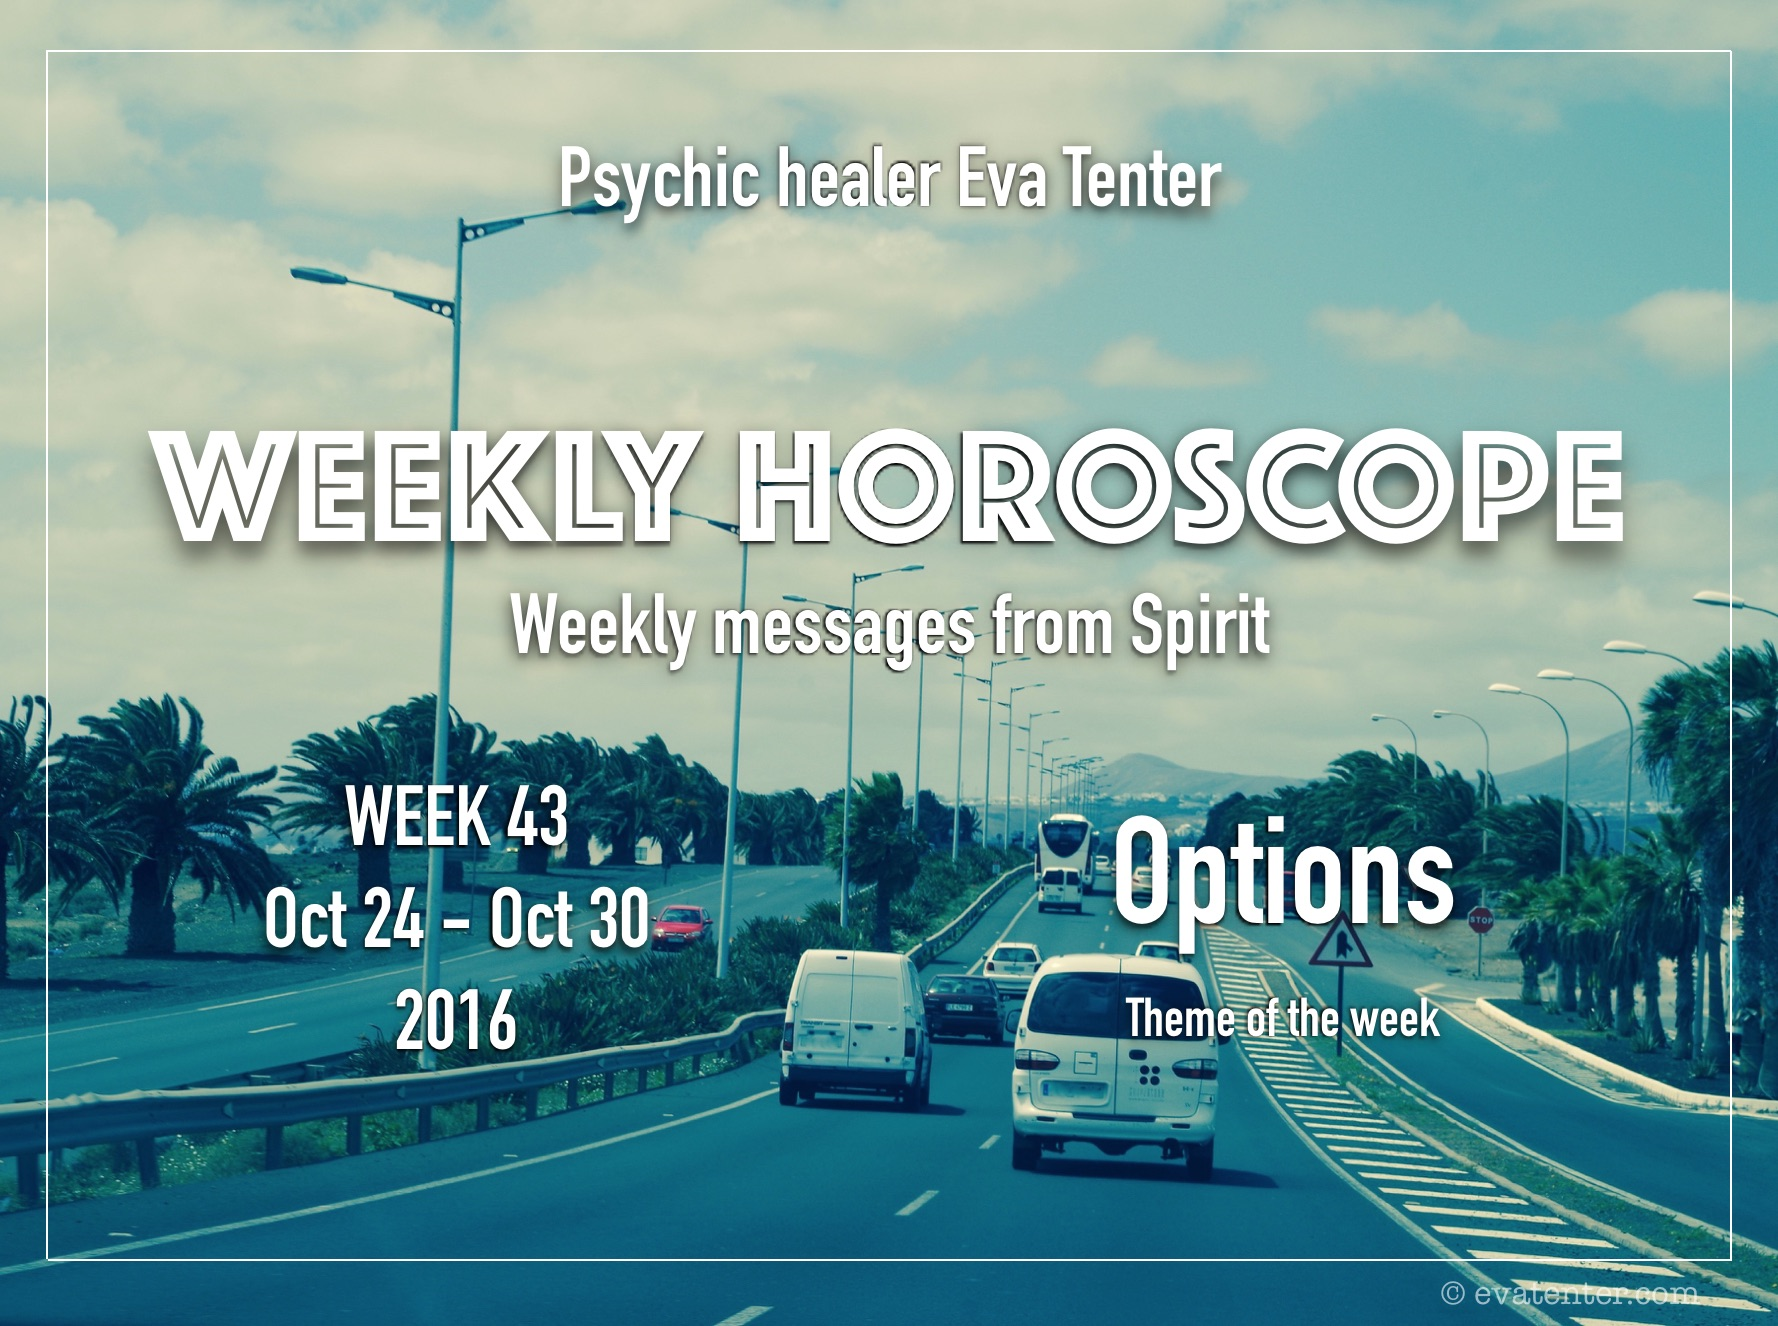 Weekly horoscope October 24-30, 2016 #horoscopes